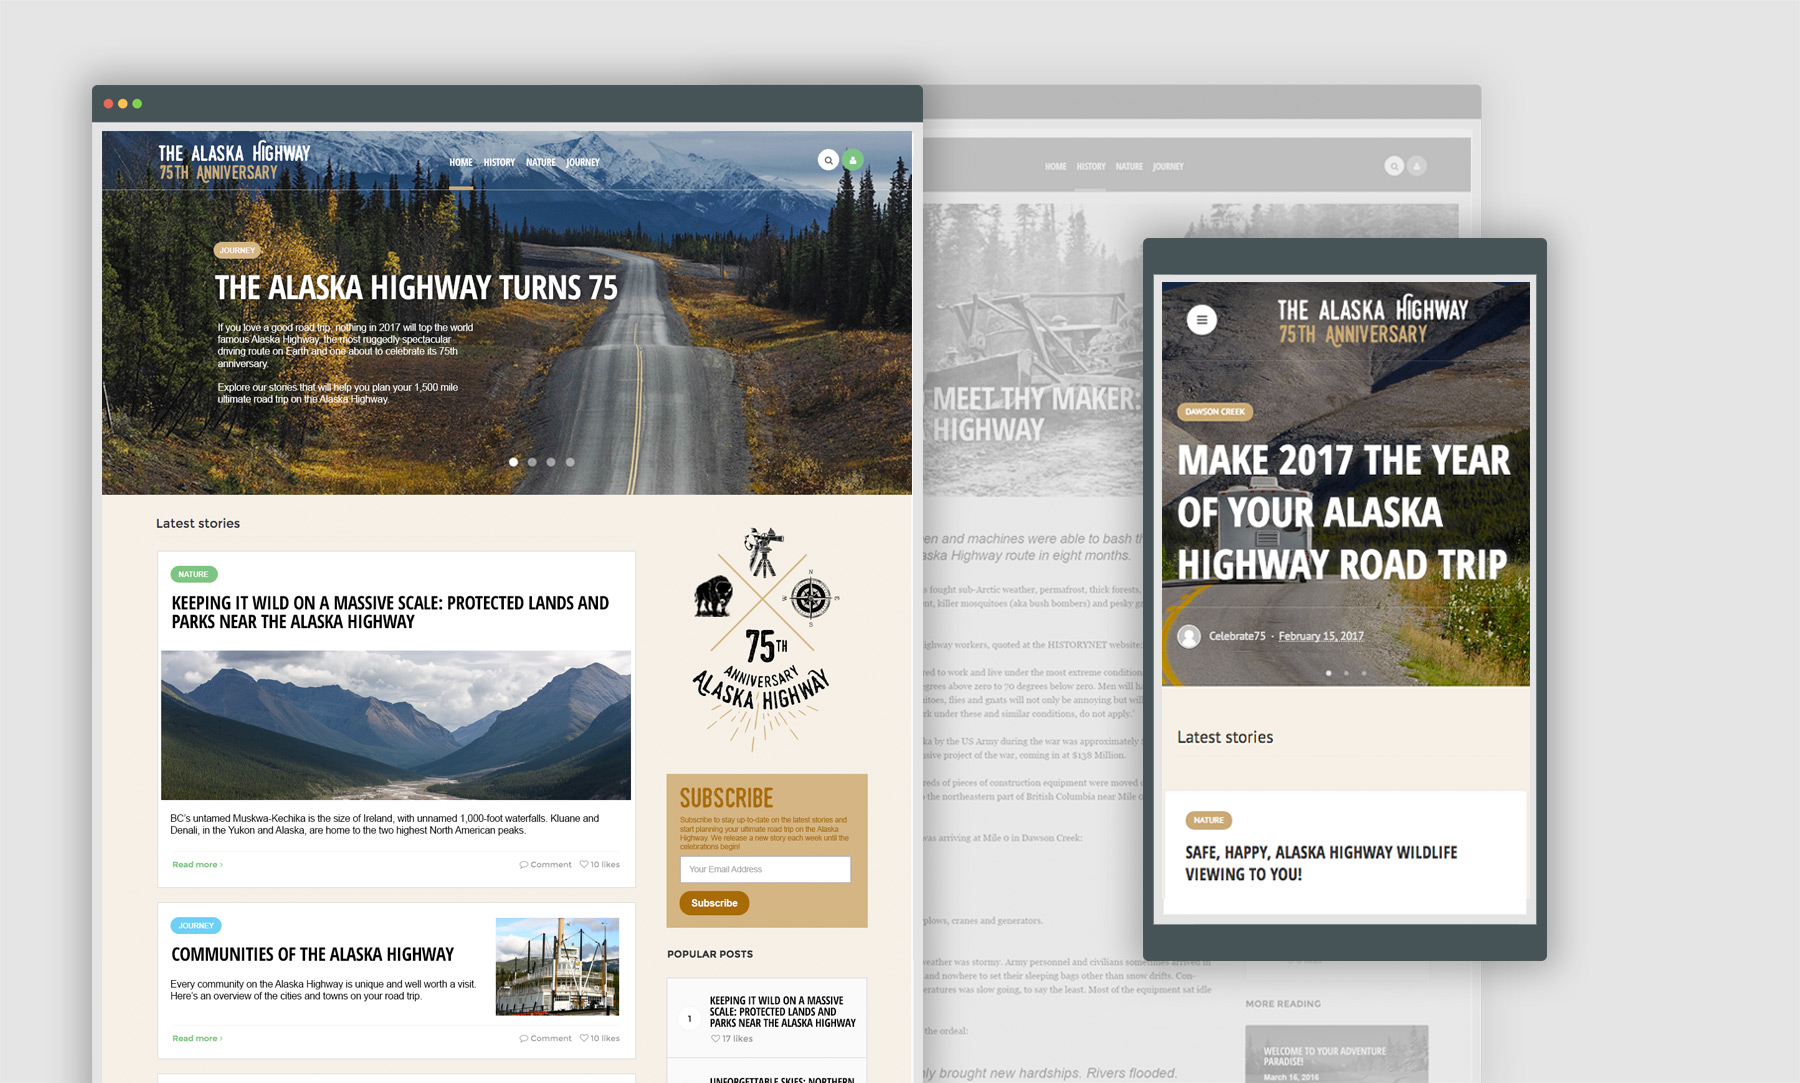 Alaska Highway Web Design and Growth Design